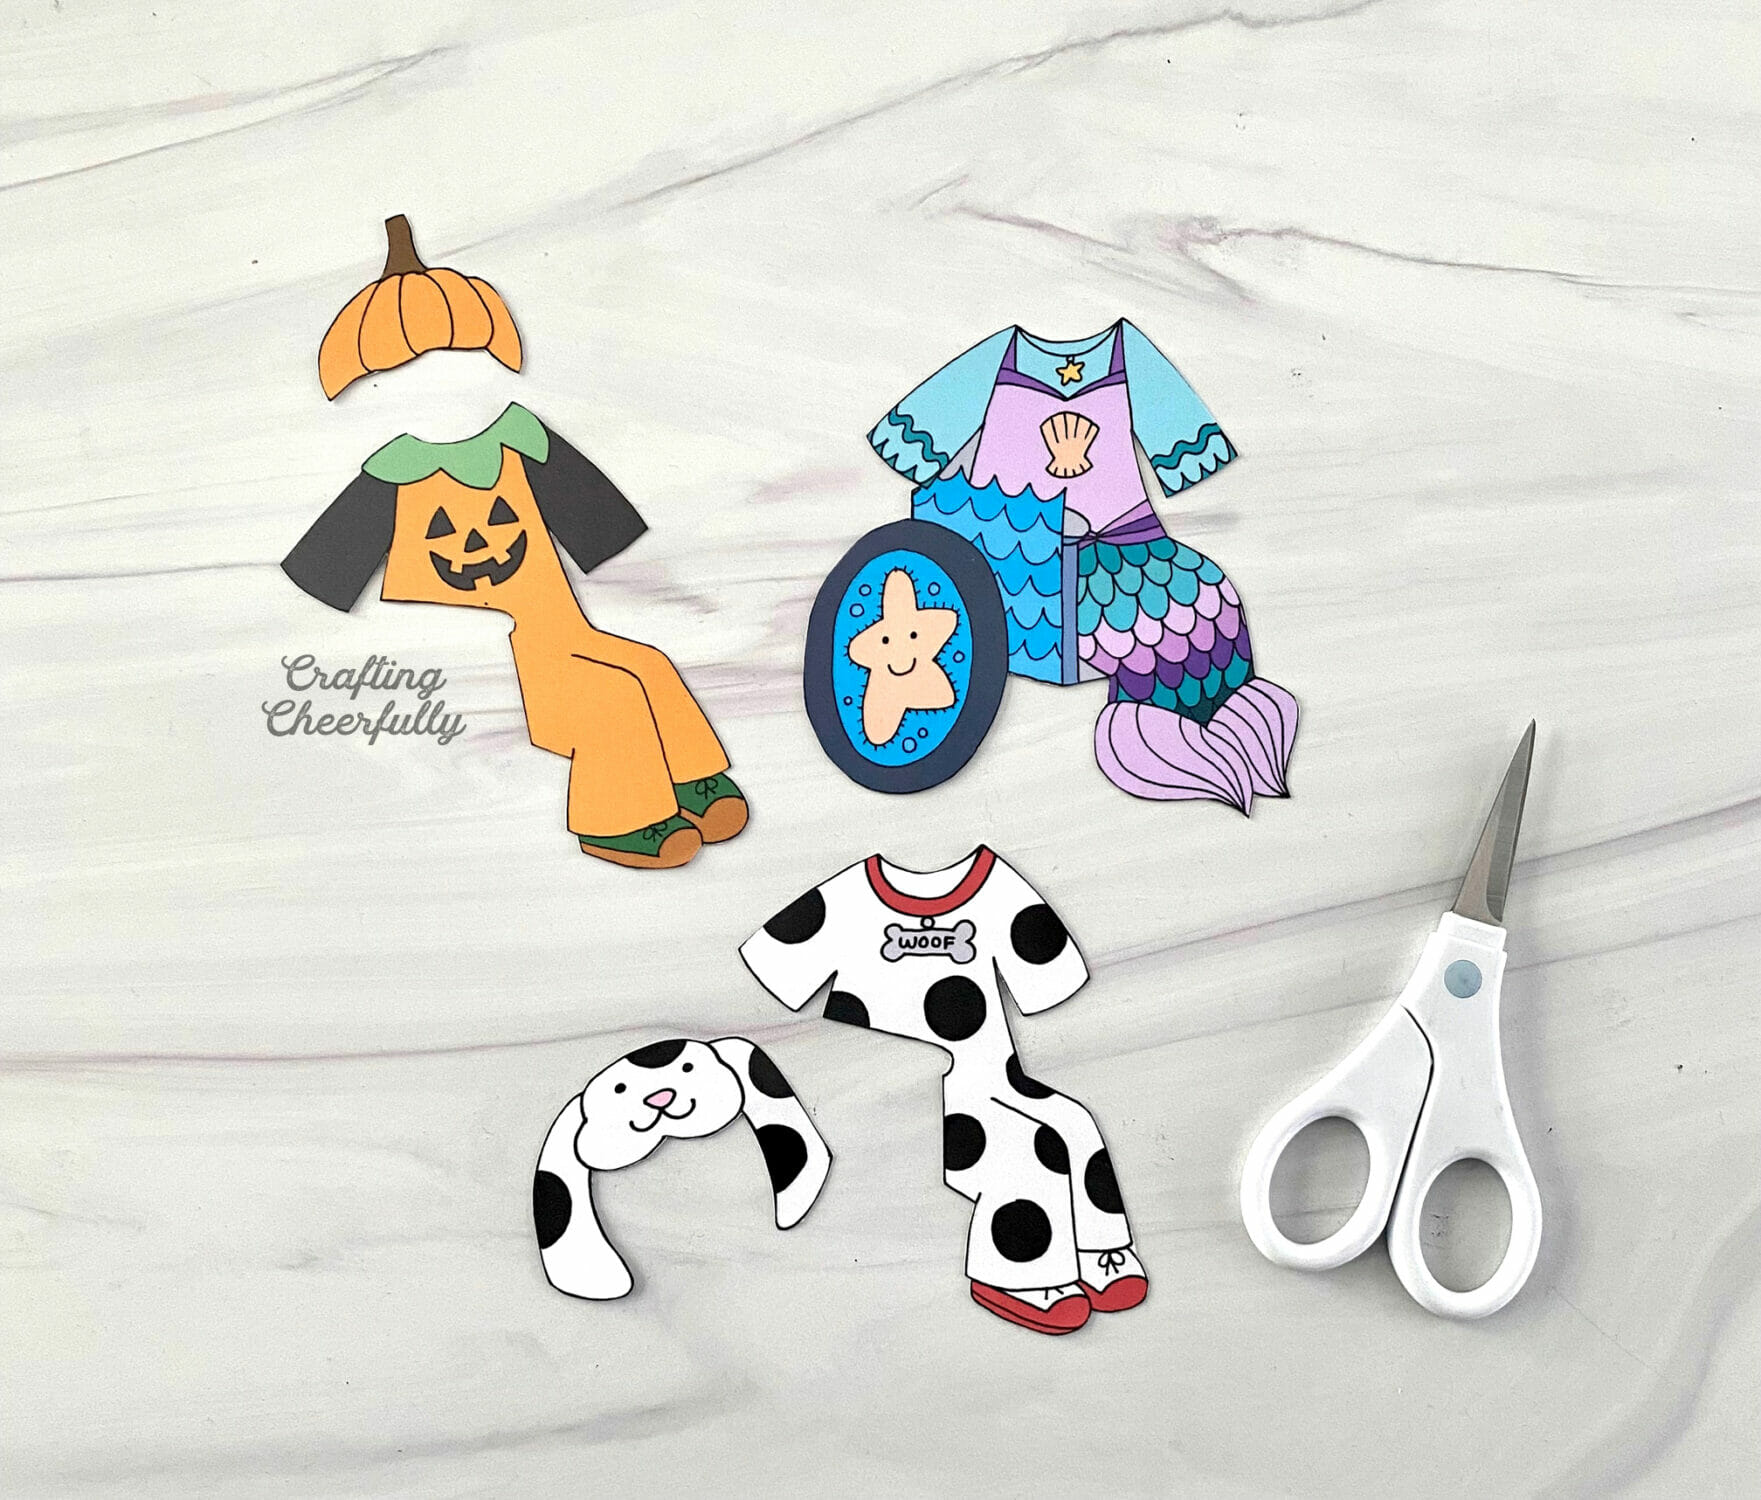 Paper costumes lay on a table next to a white scissors.